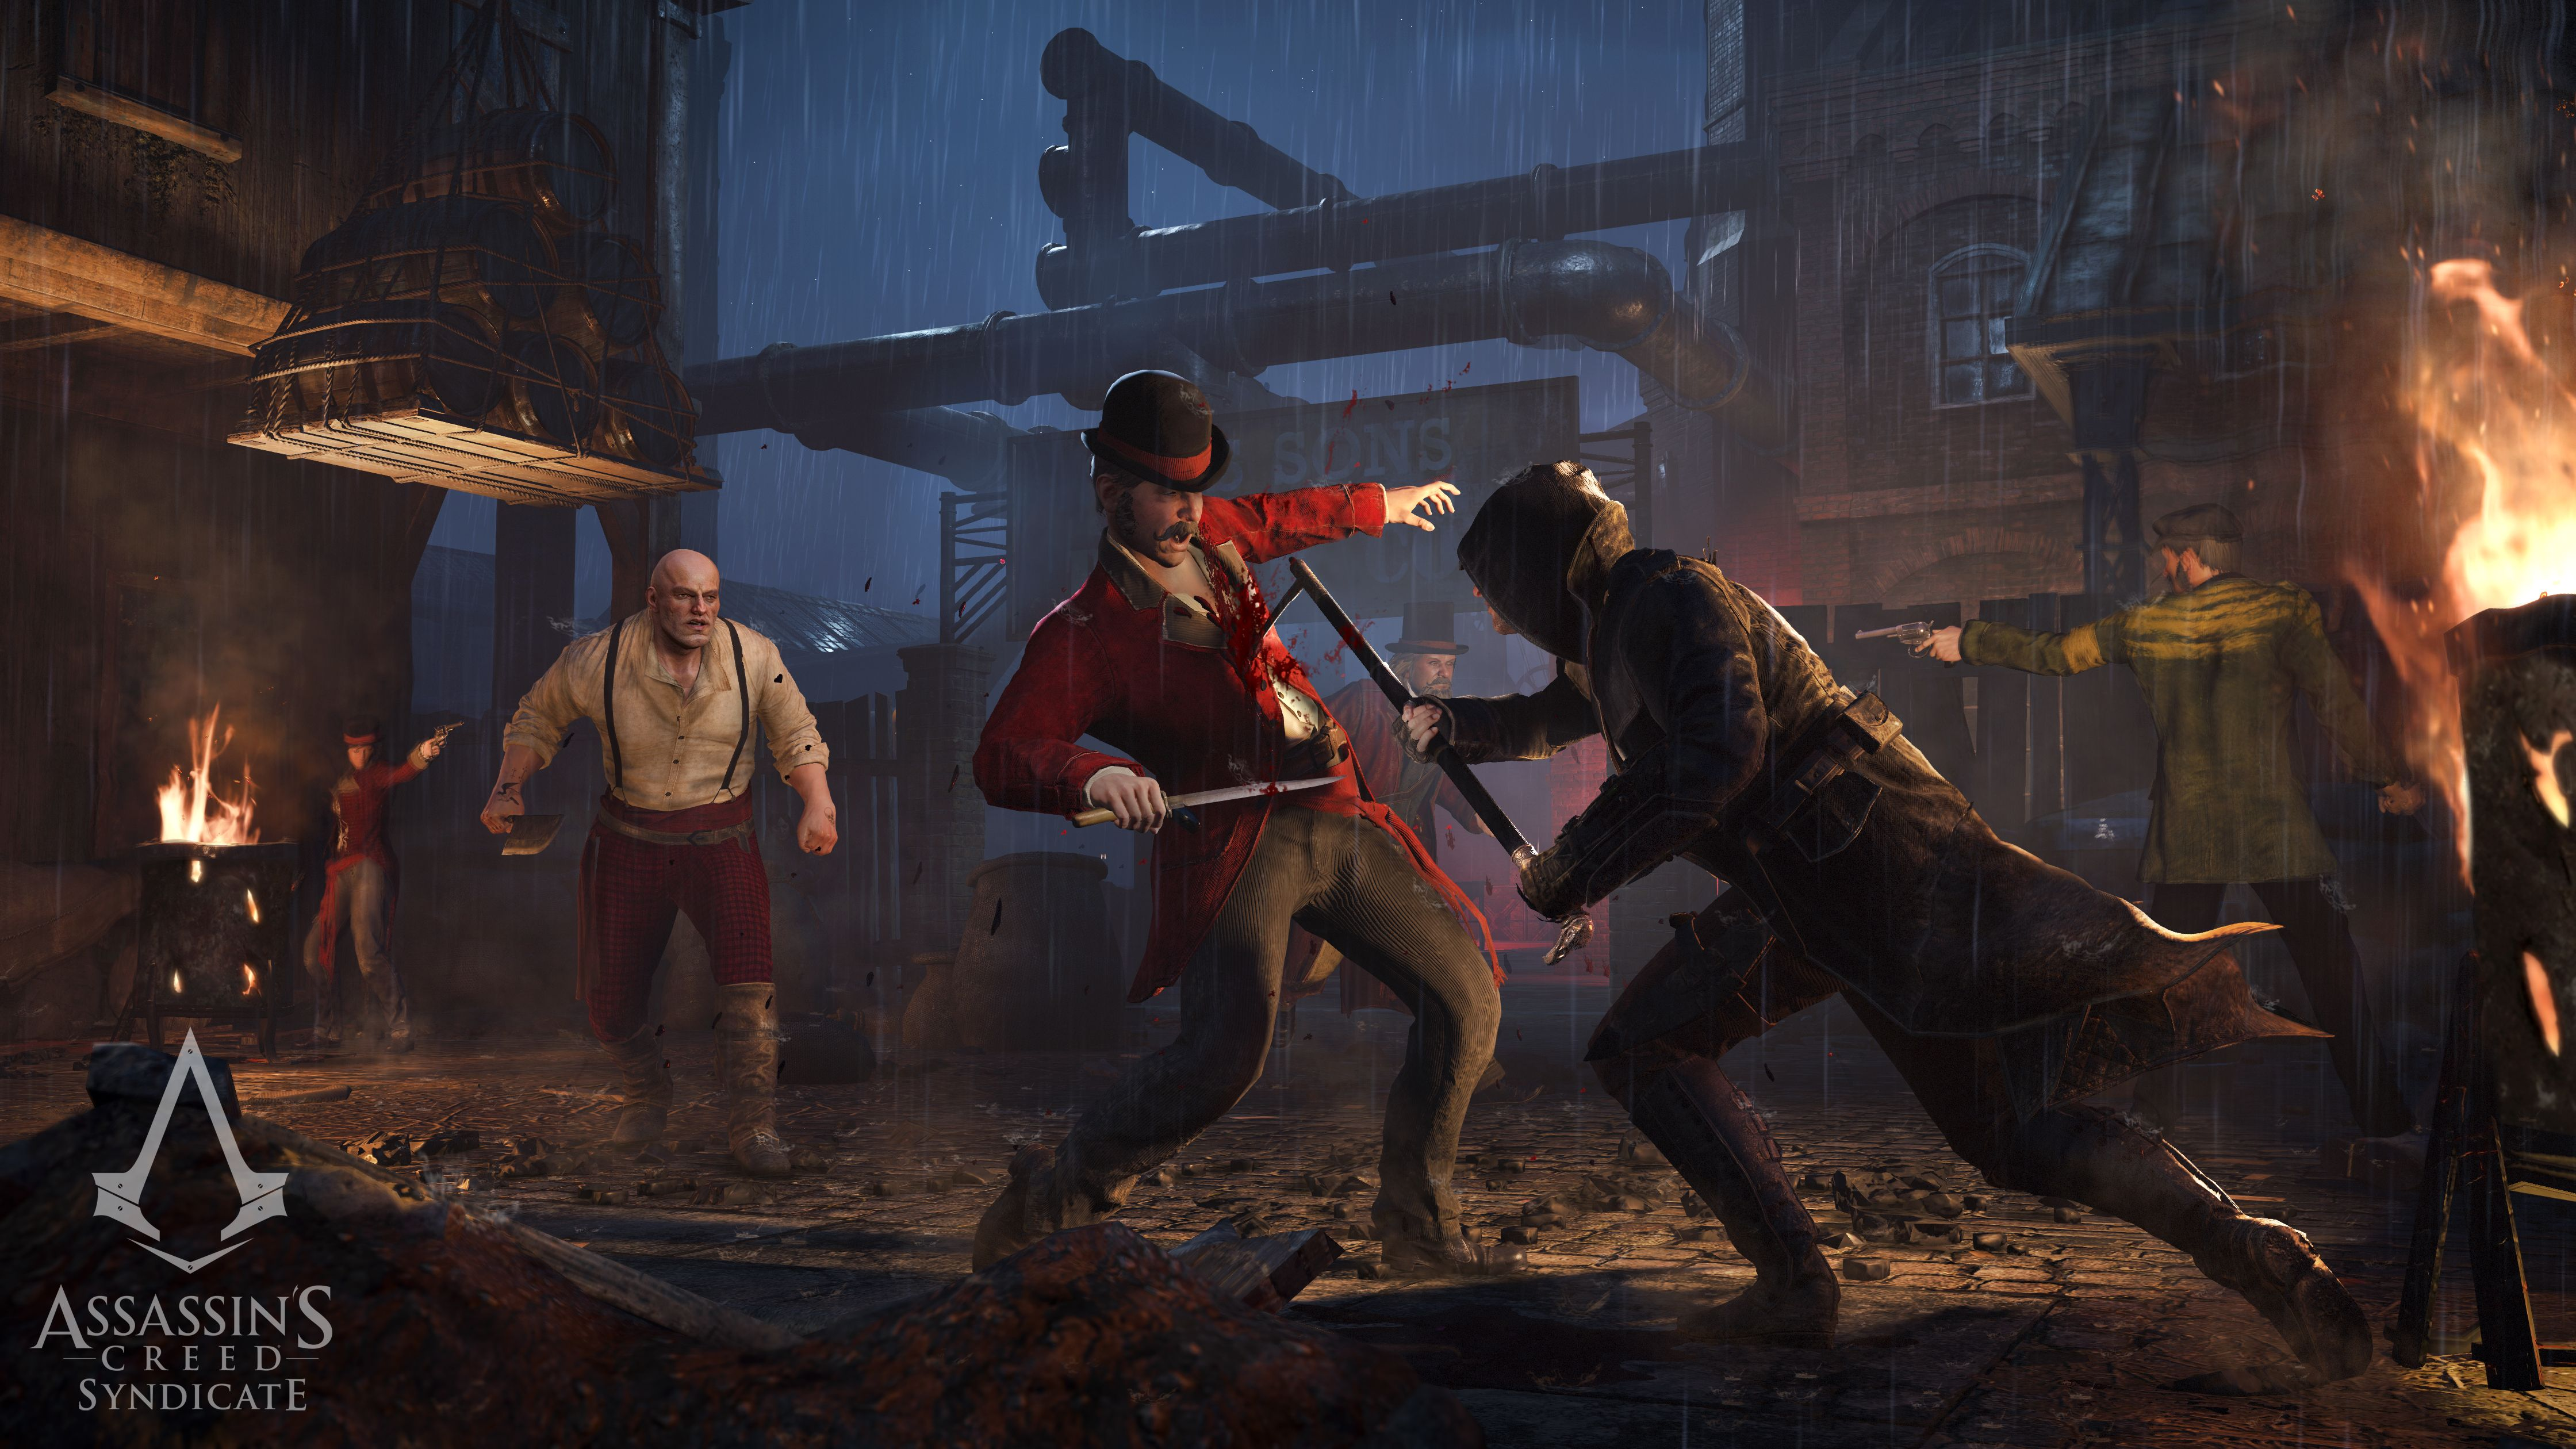 Nový trailer a gameplay z Assassin's Creed: Syndicate 110224